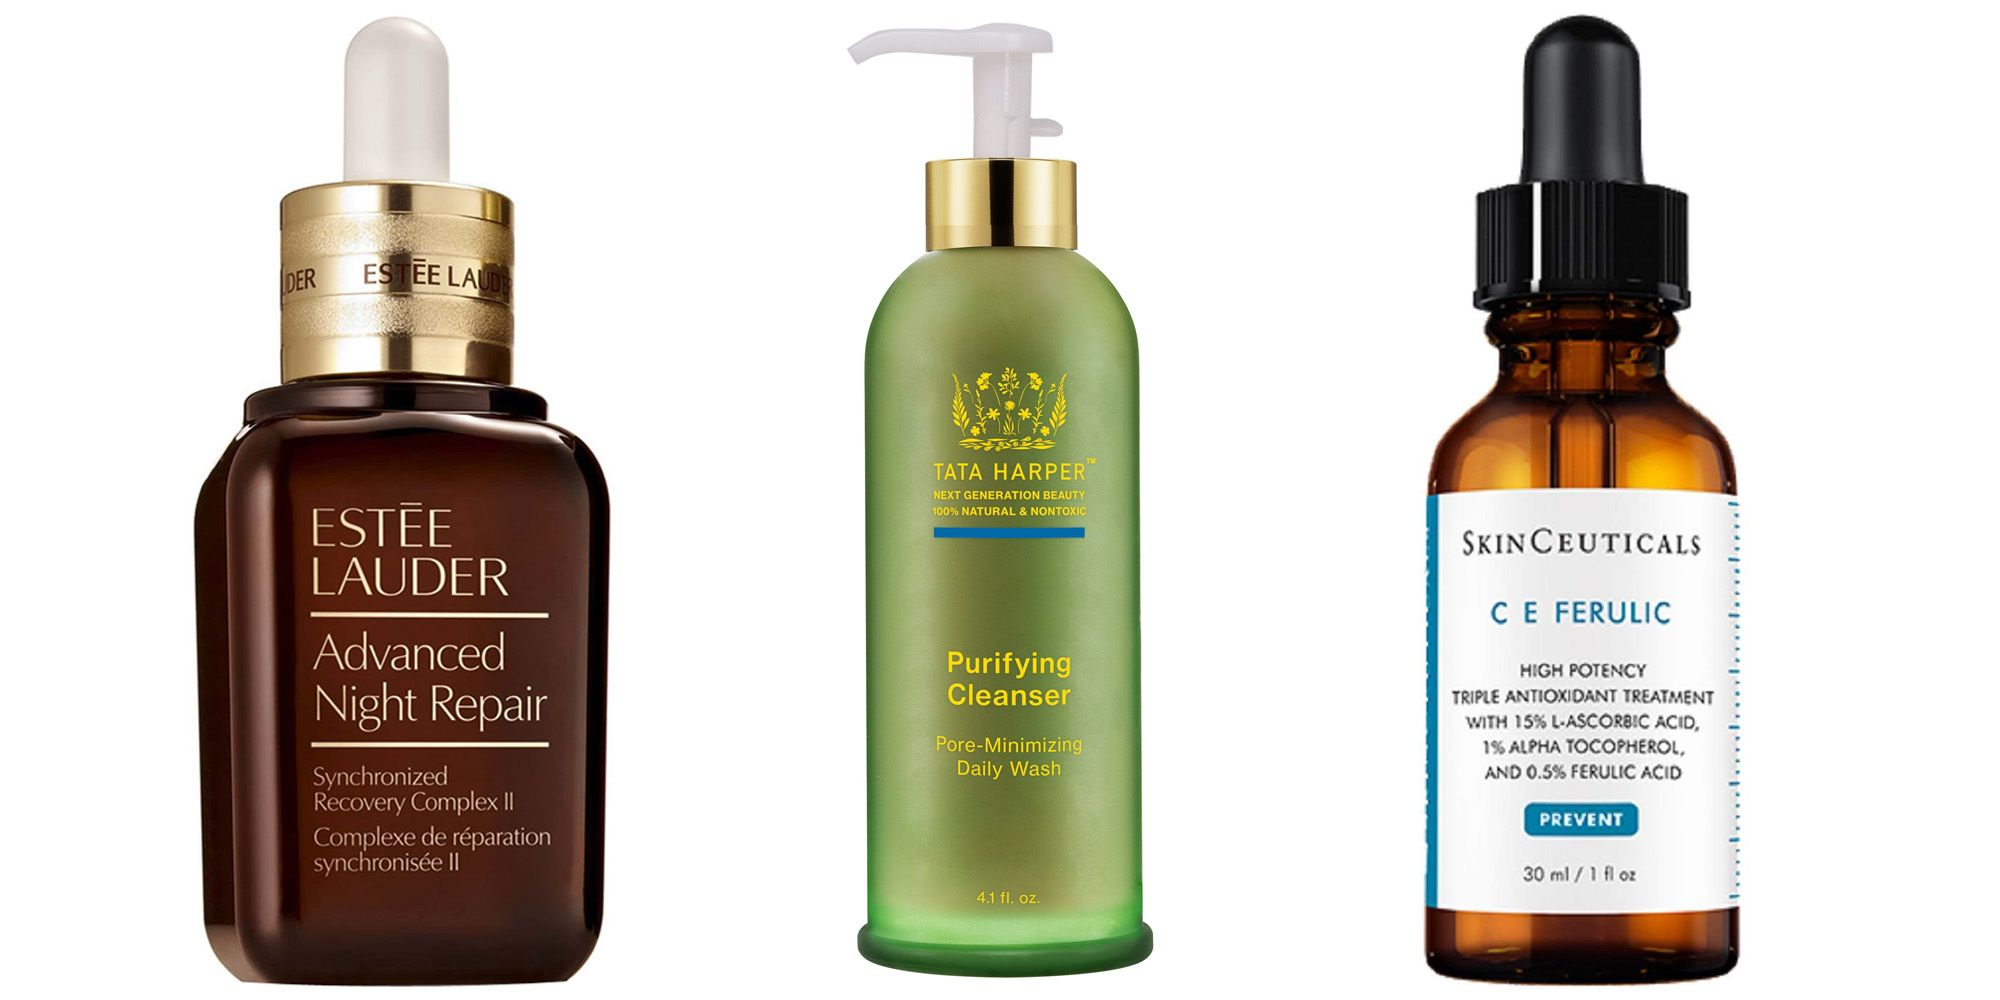 the best skin care products 2019 top skin care items for your routineimage